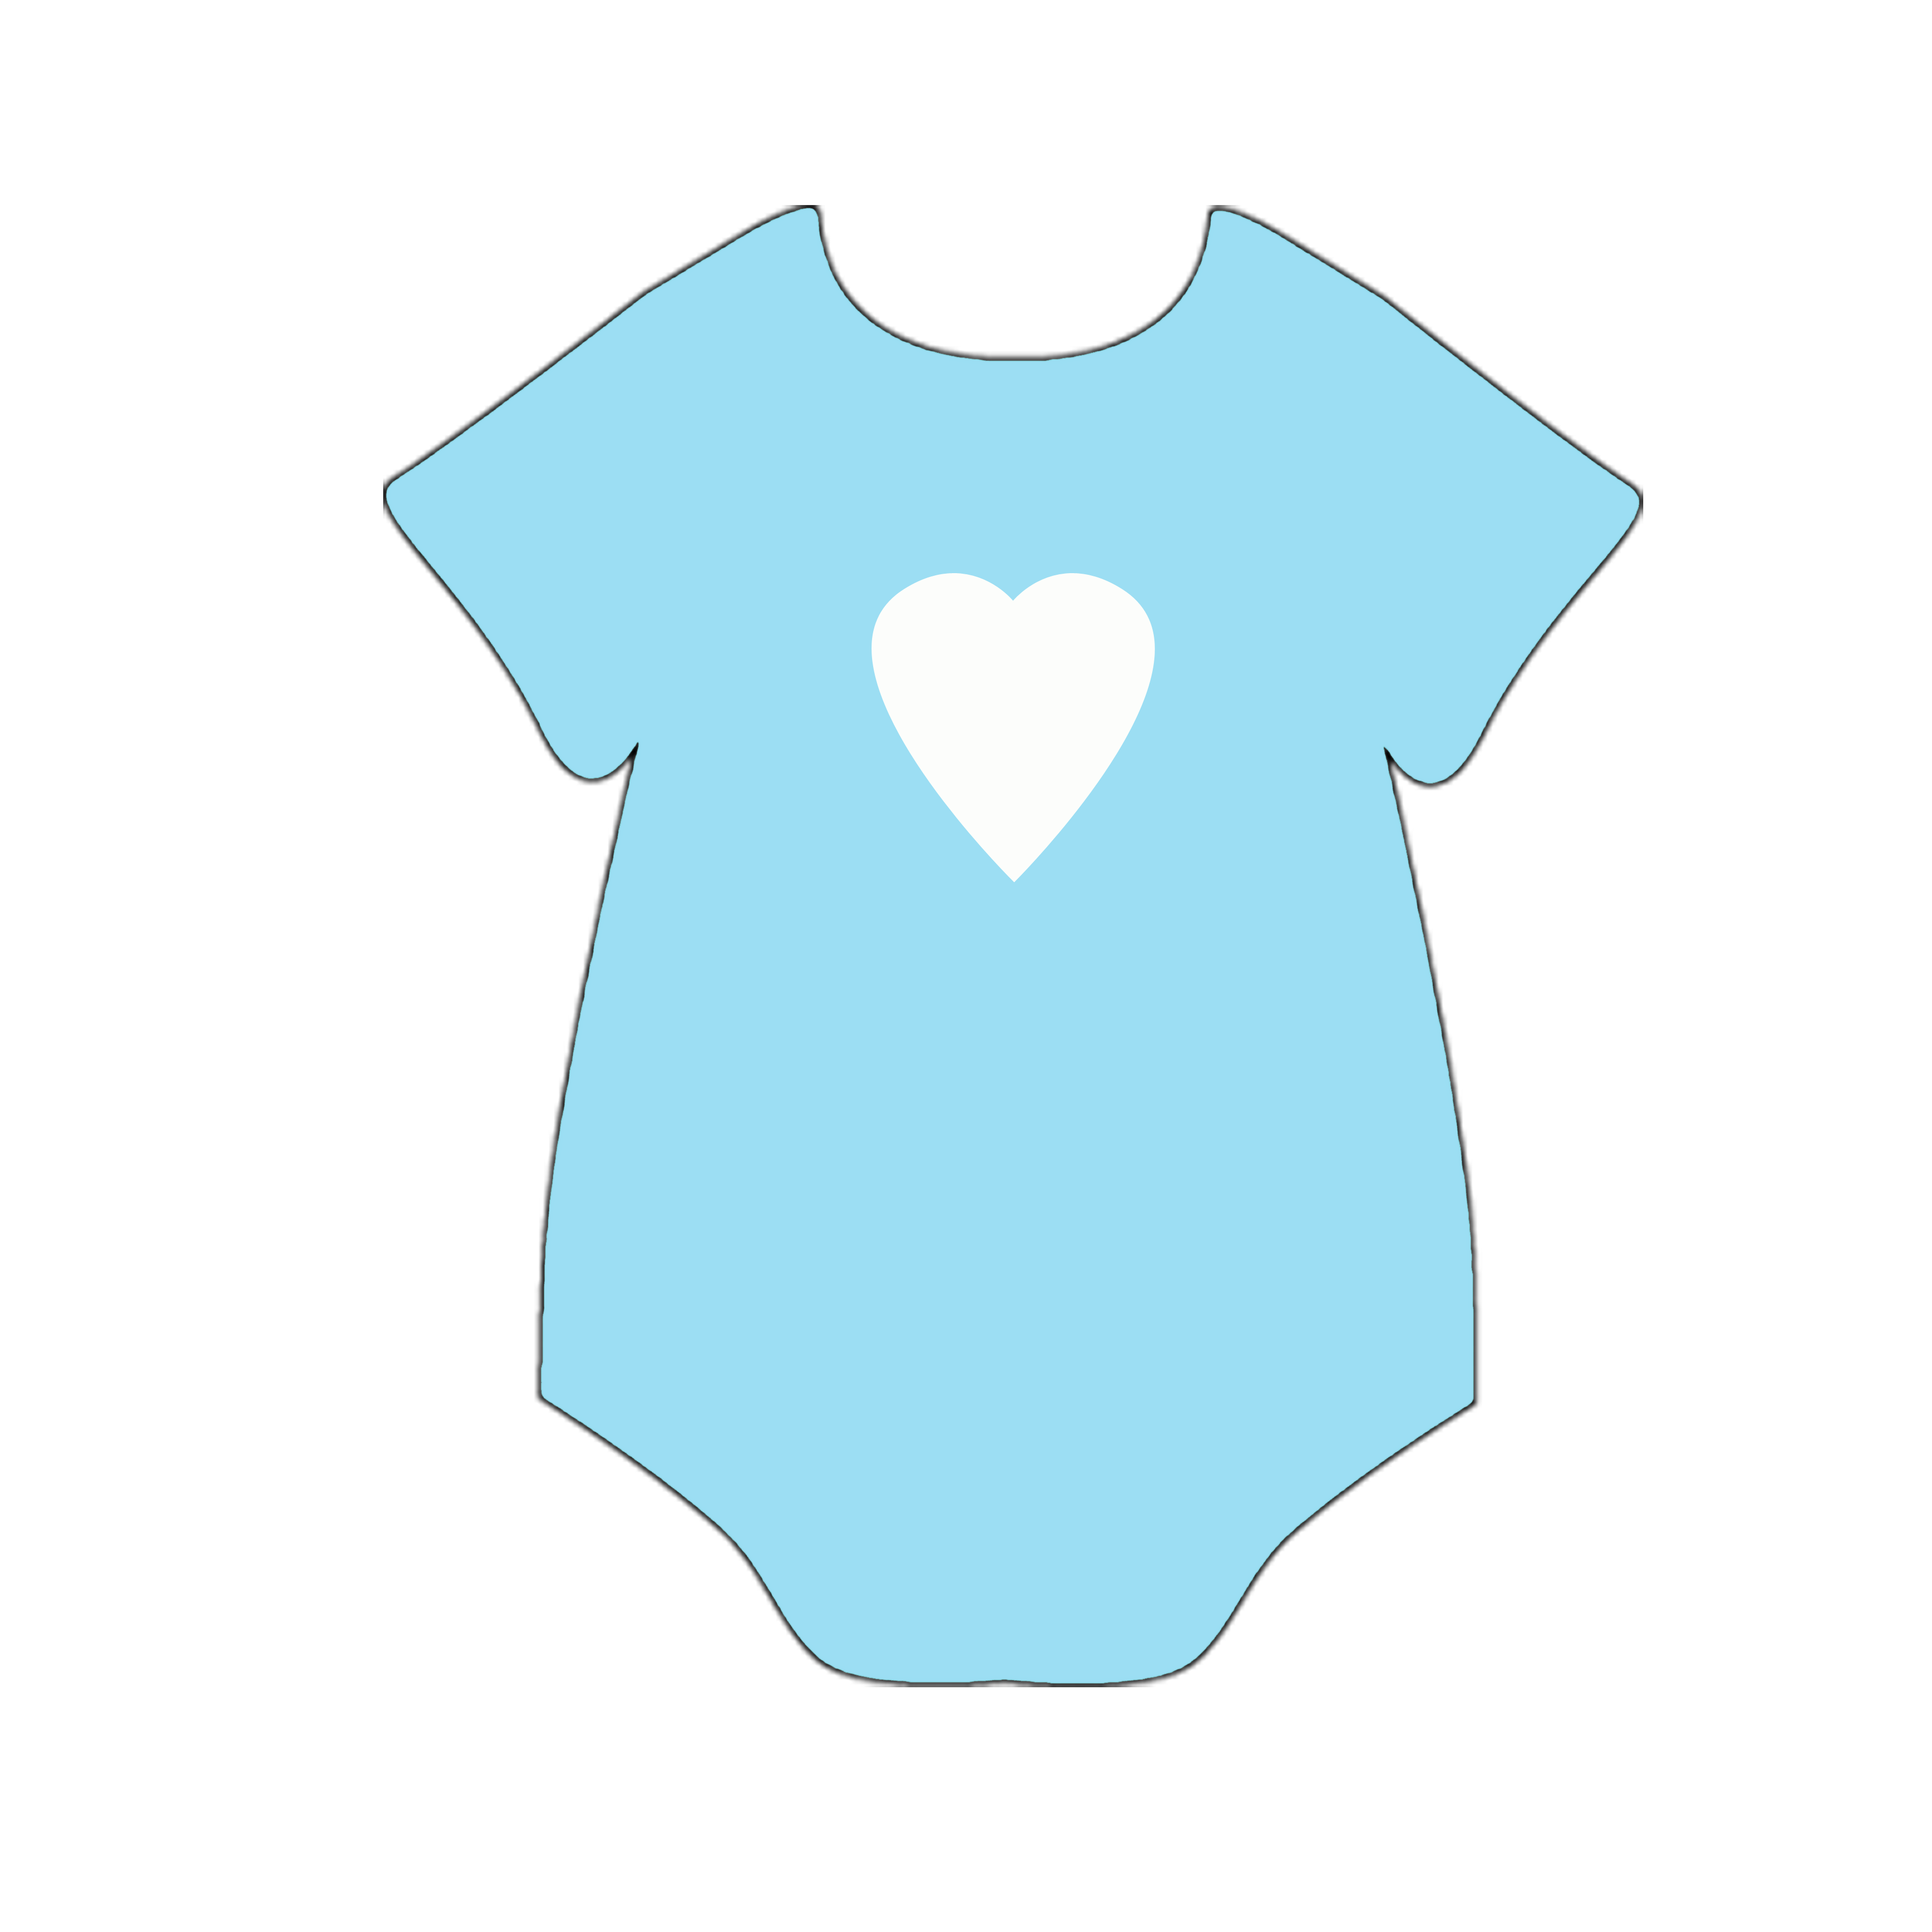 baby boy clipart shower - photo #24